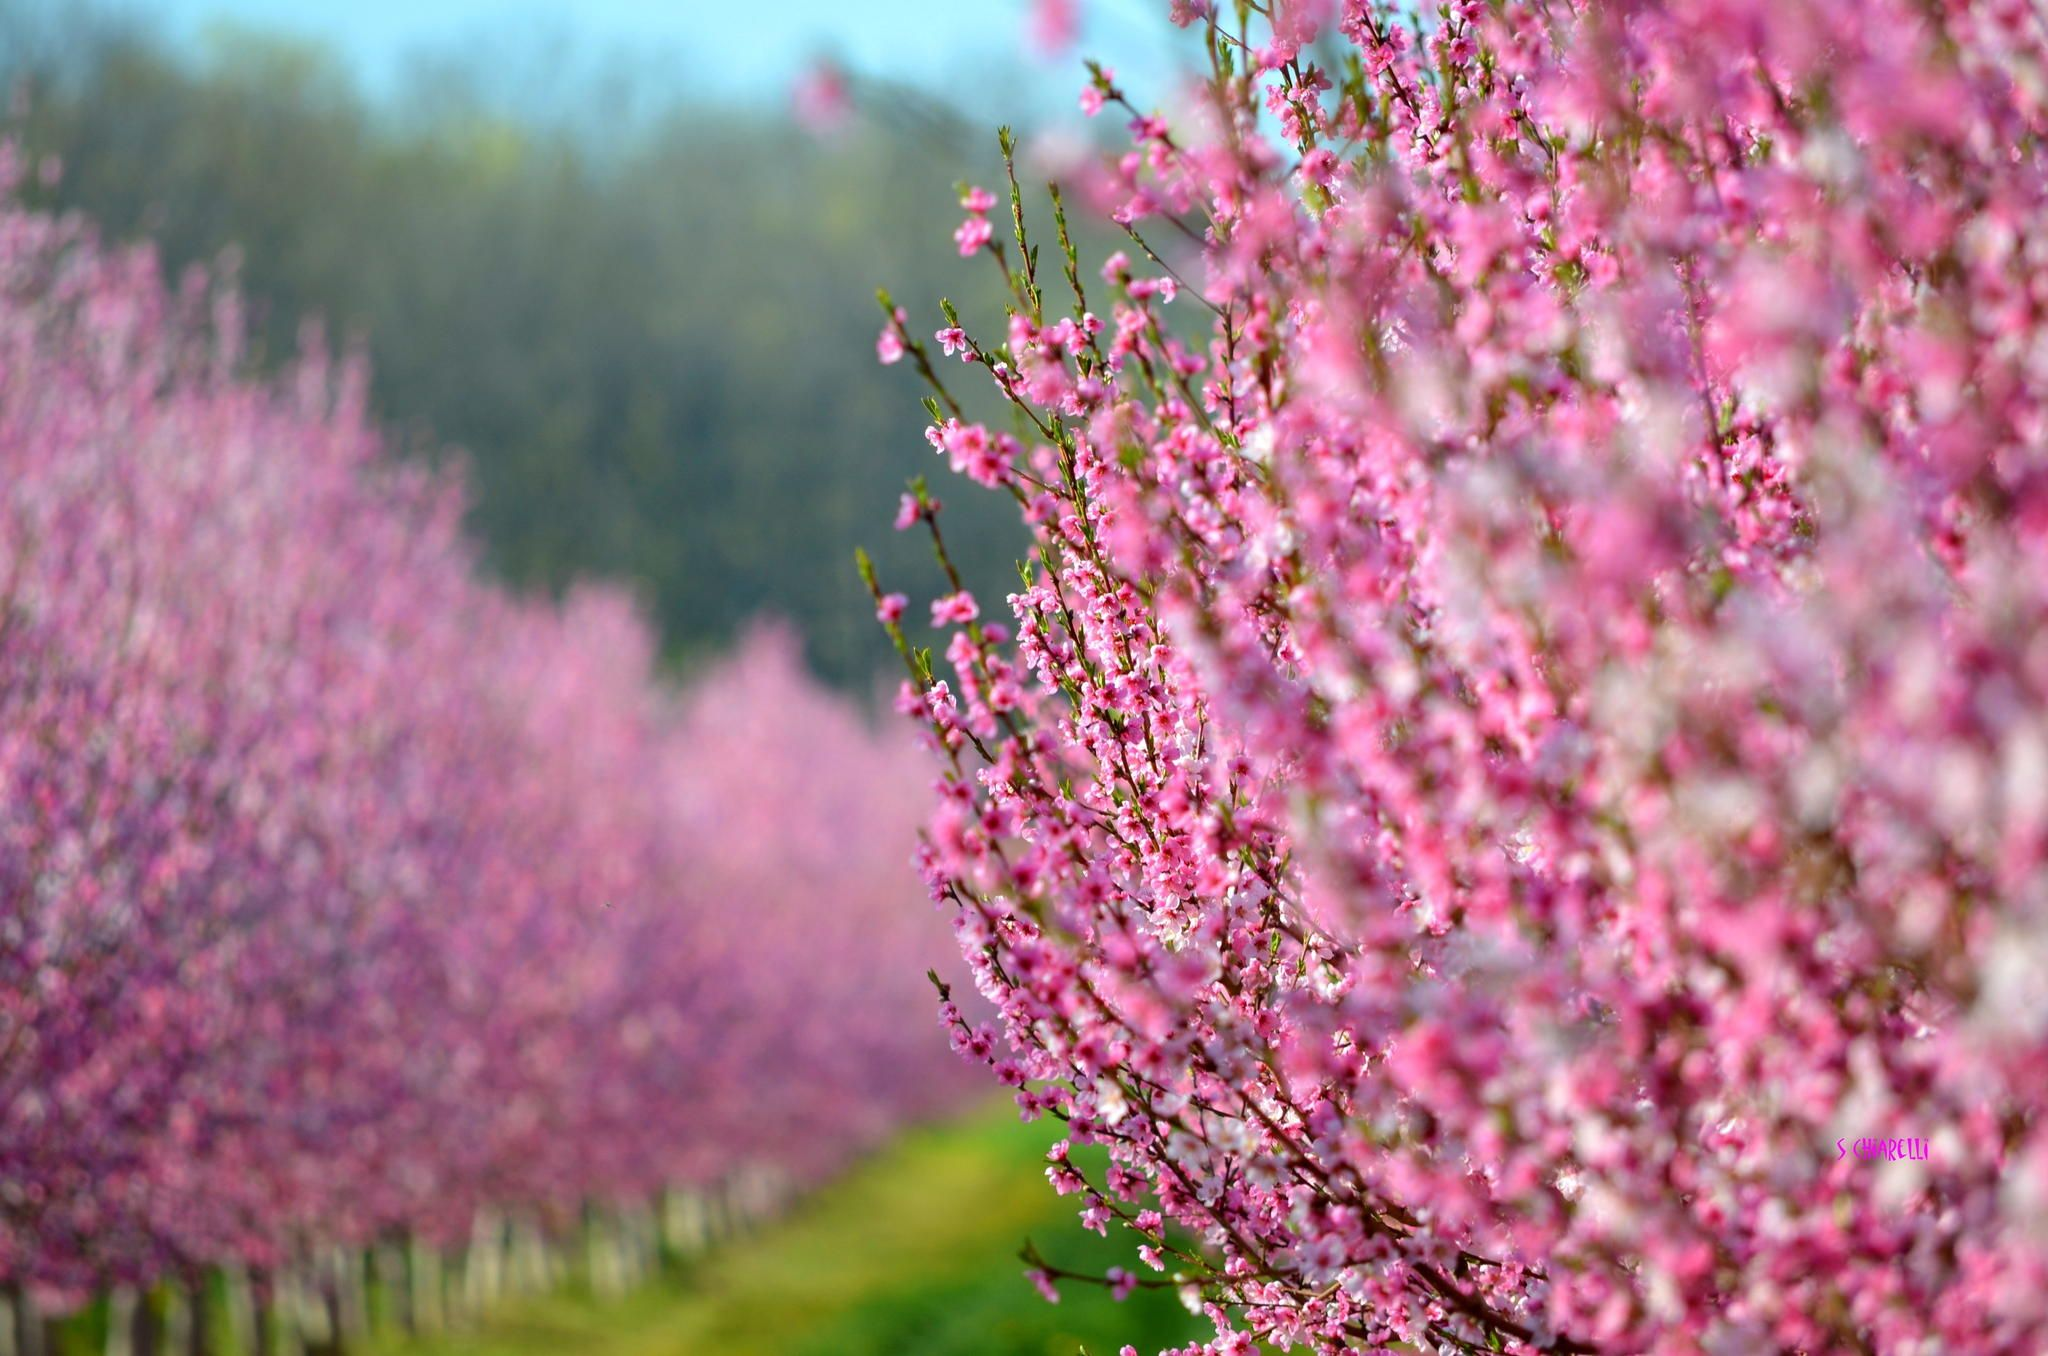 Orchard of Blossoms by Steve Chiarelli on 500px